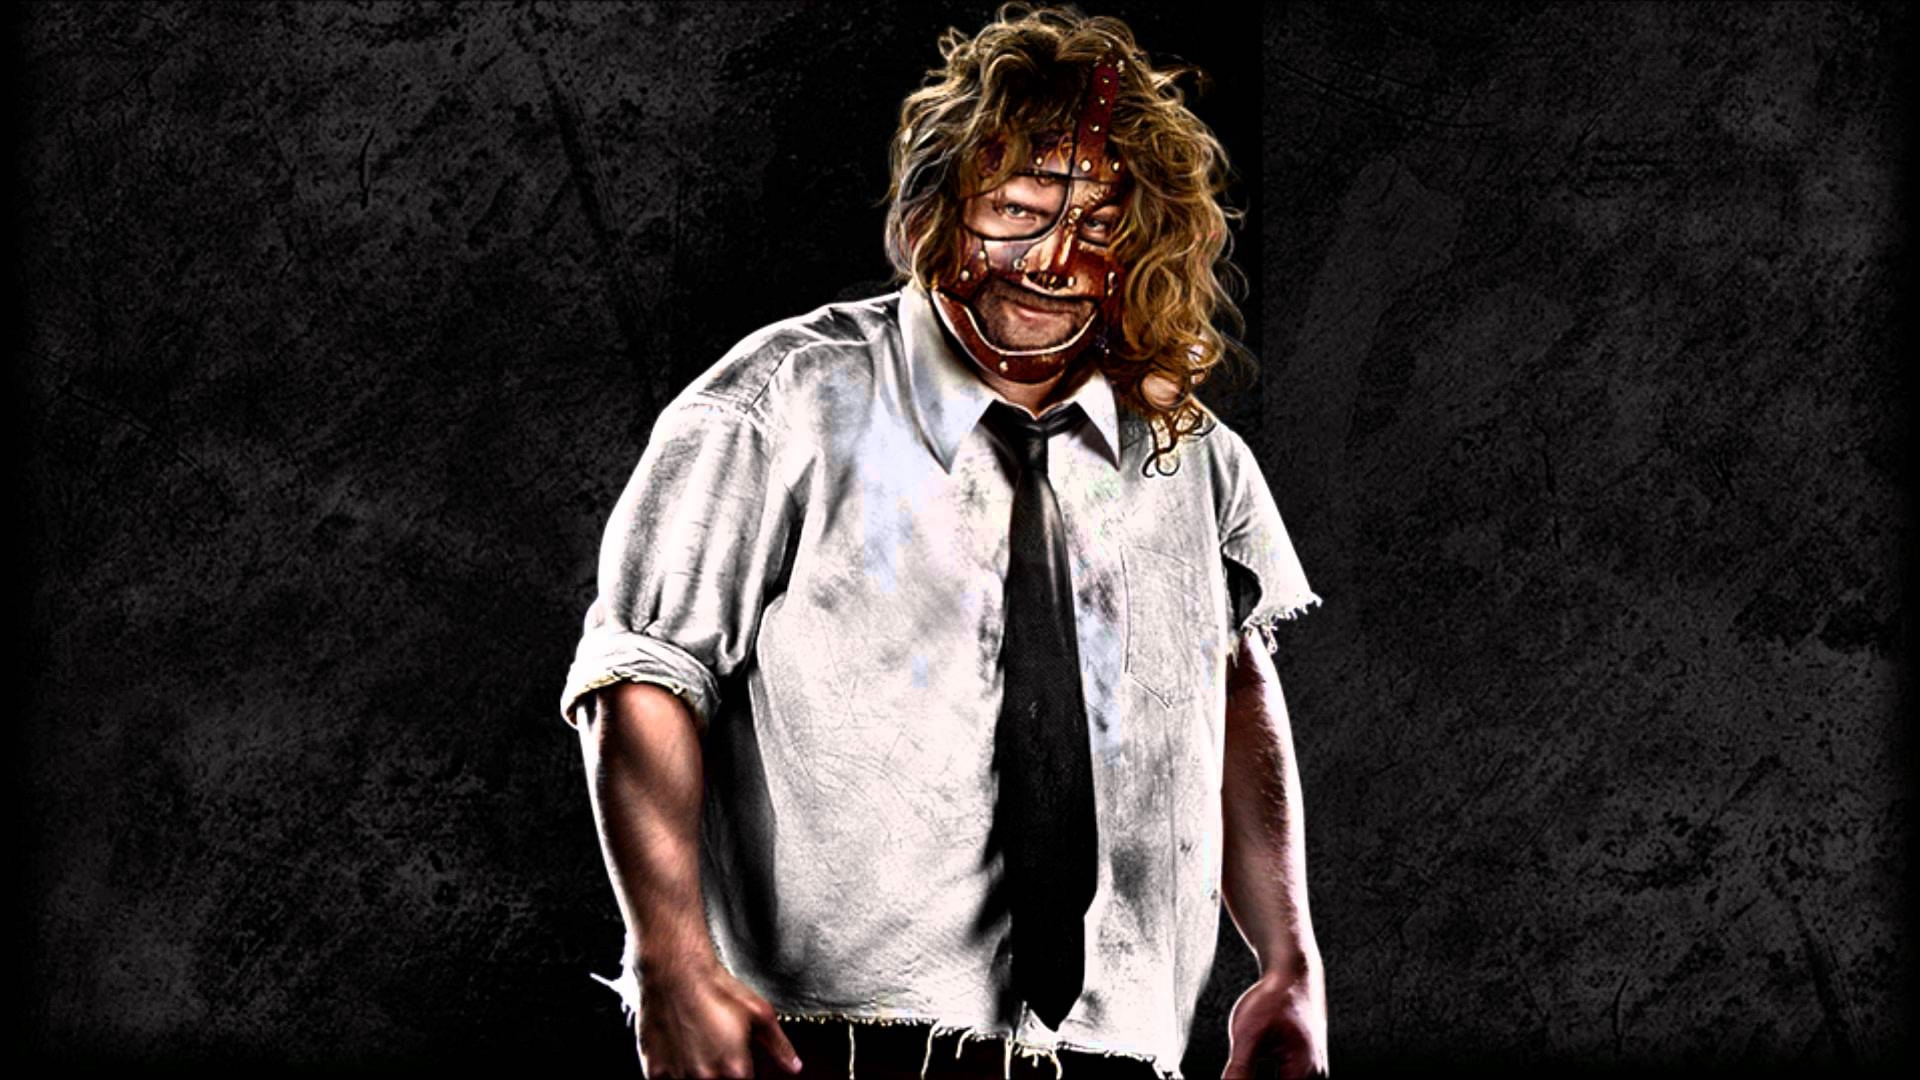 mankind wwe hd wallpaper